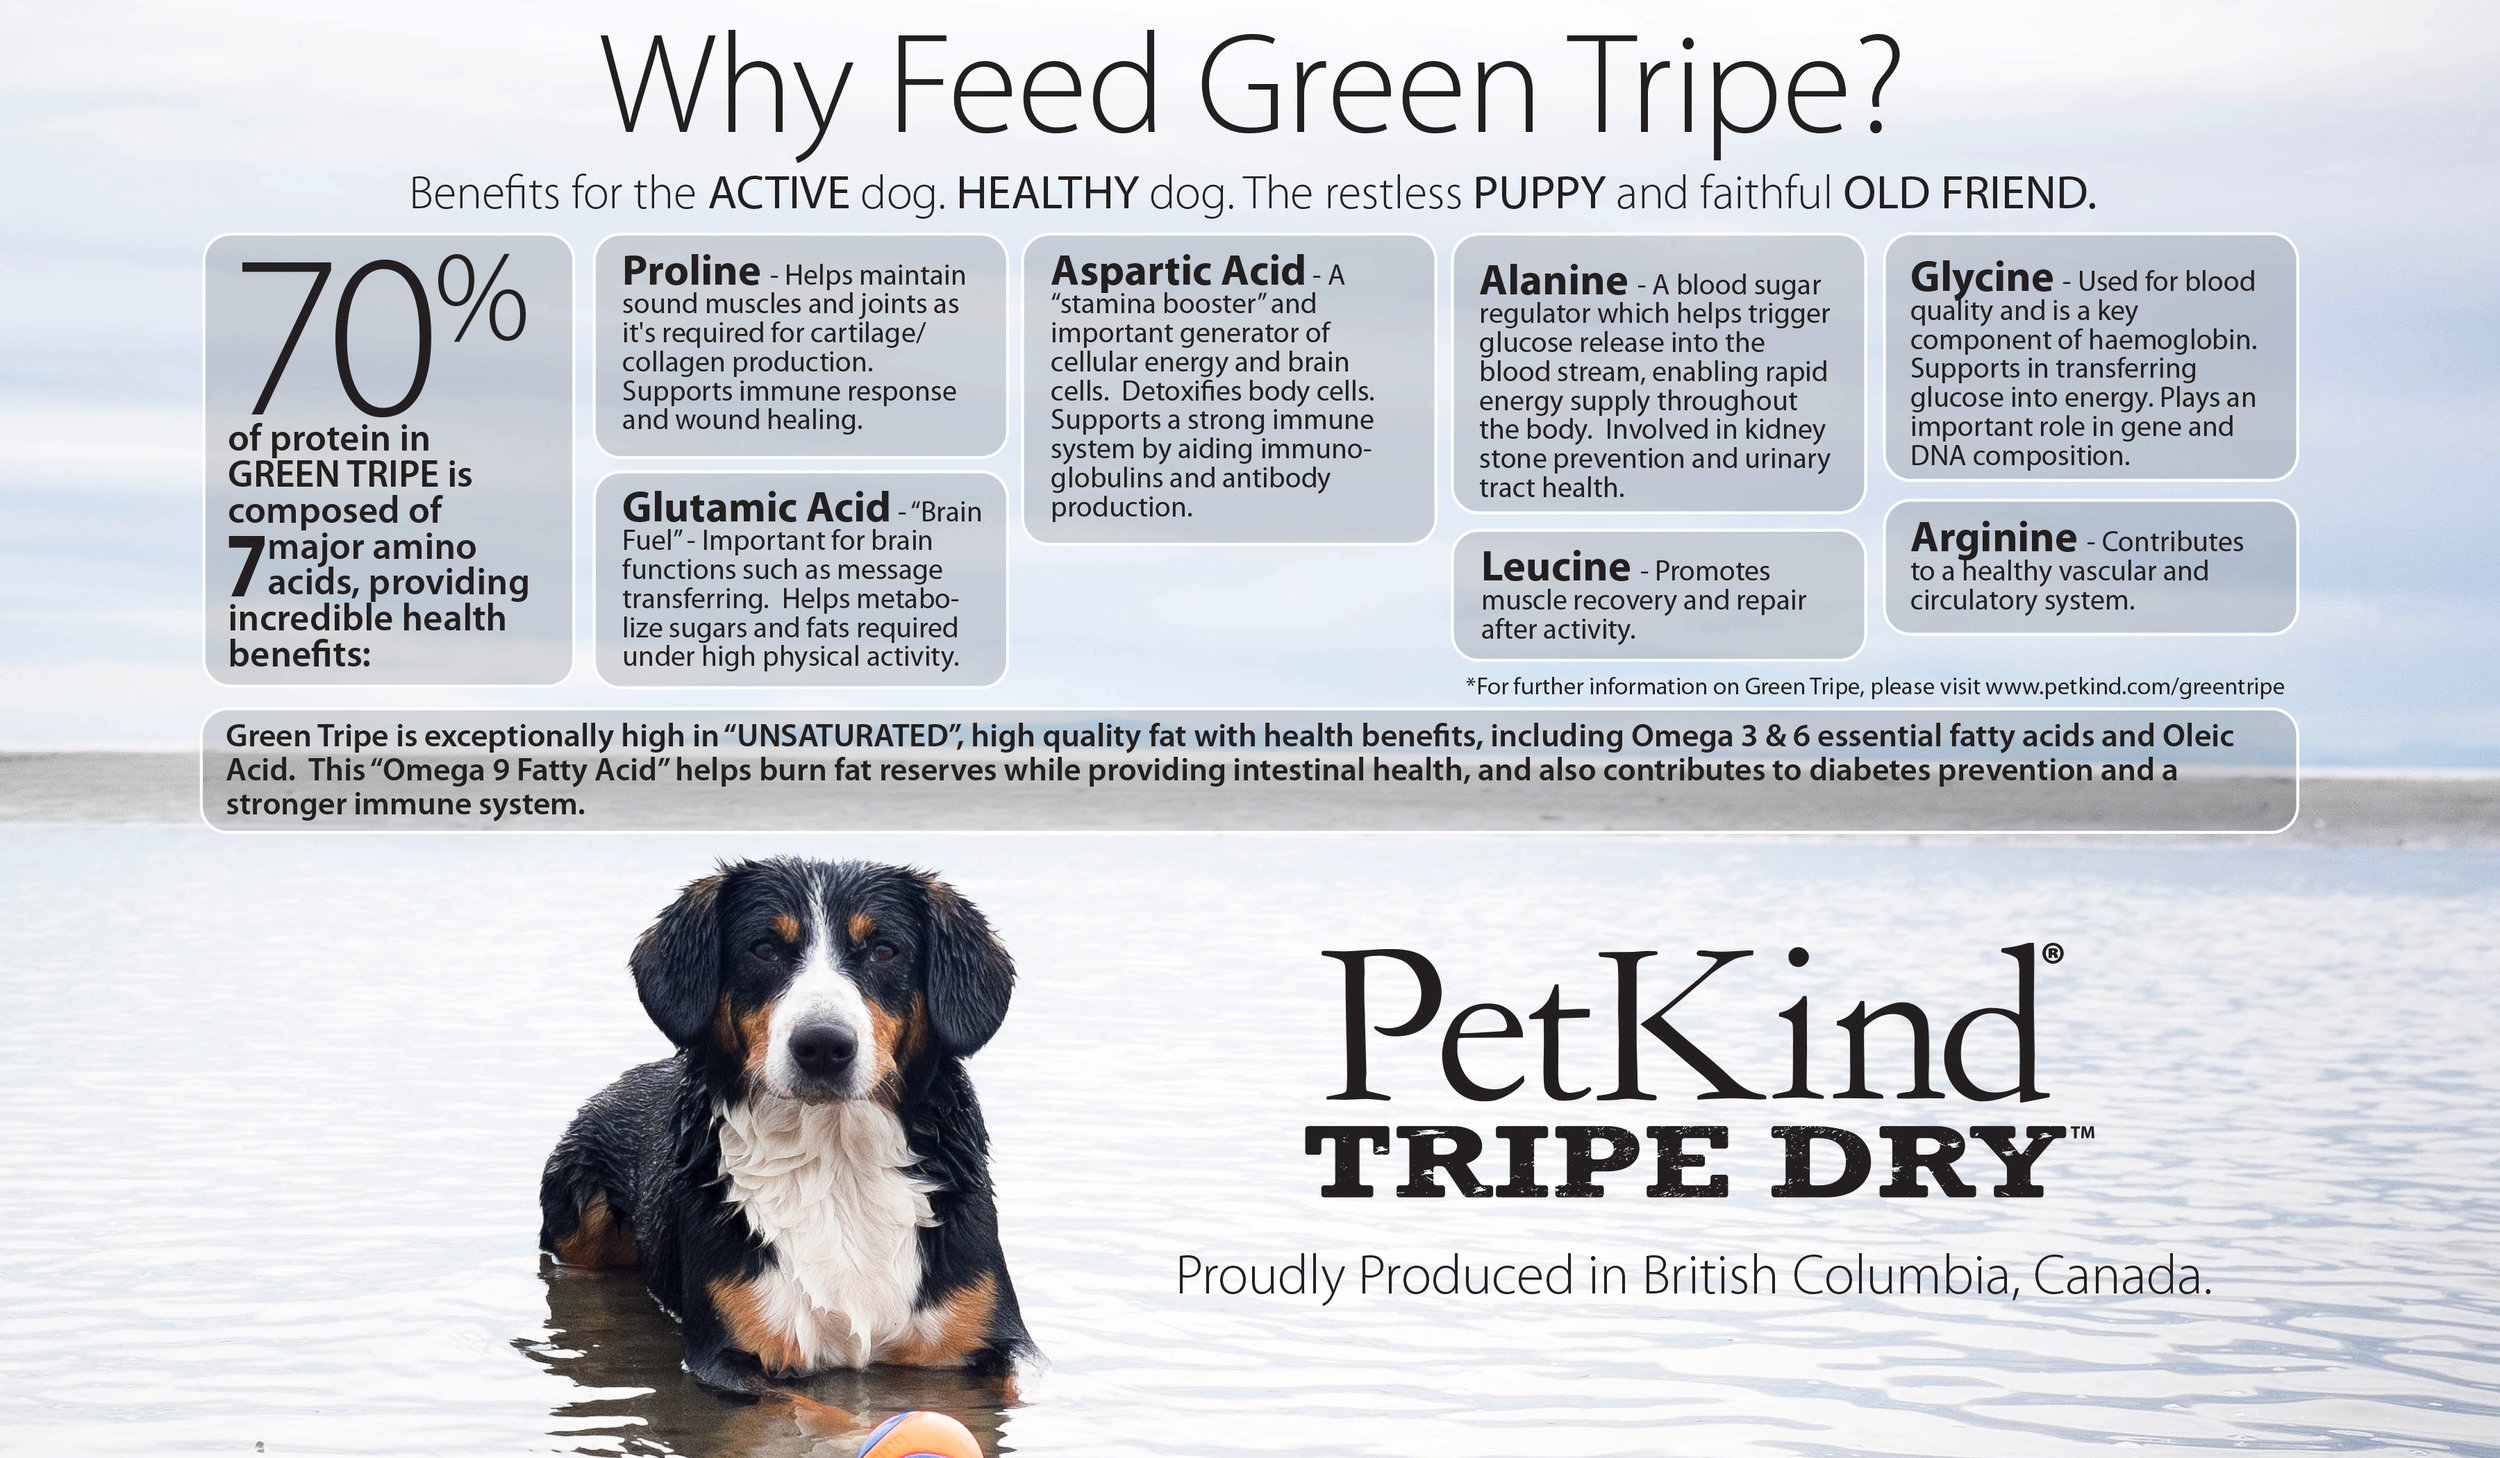 petkind-banner-why-feed-tripe.jpg